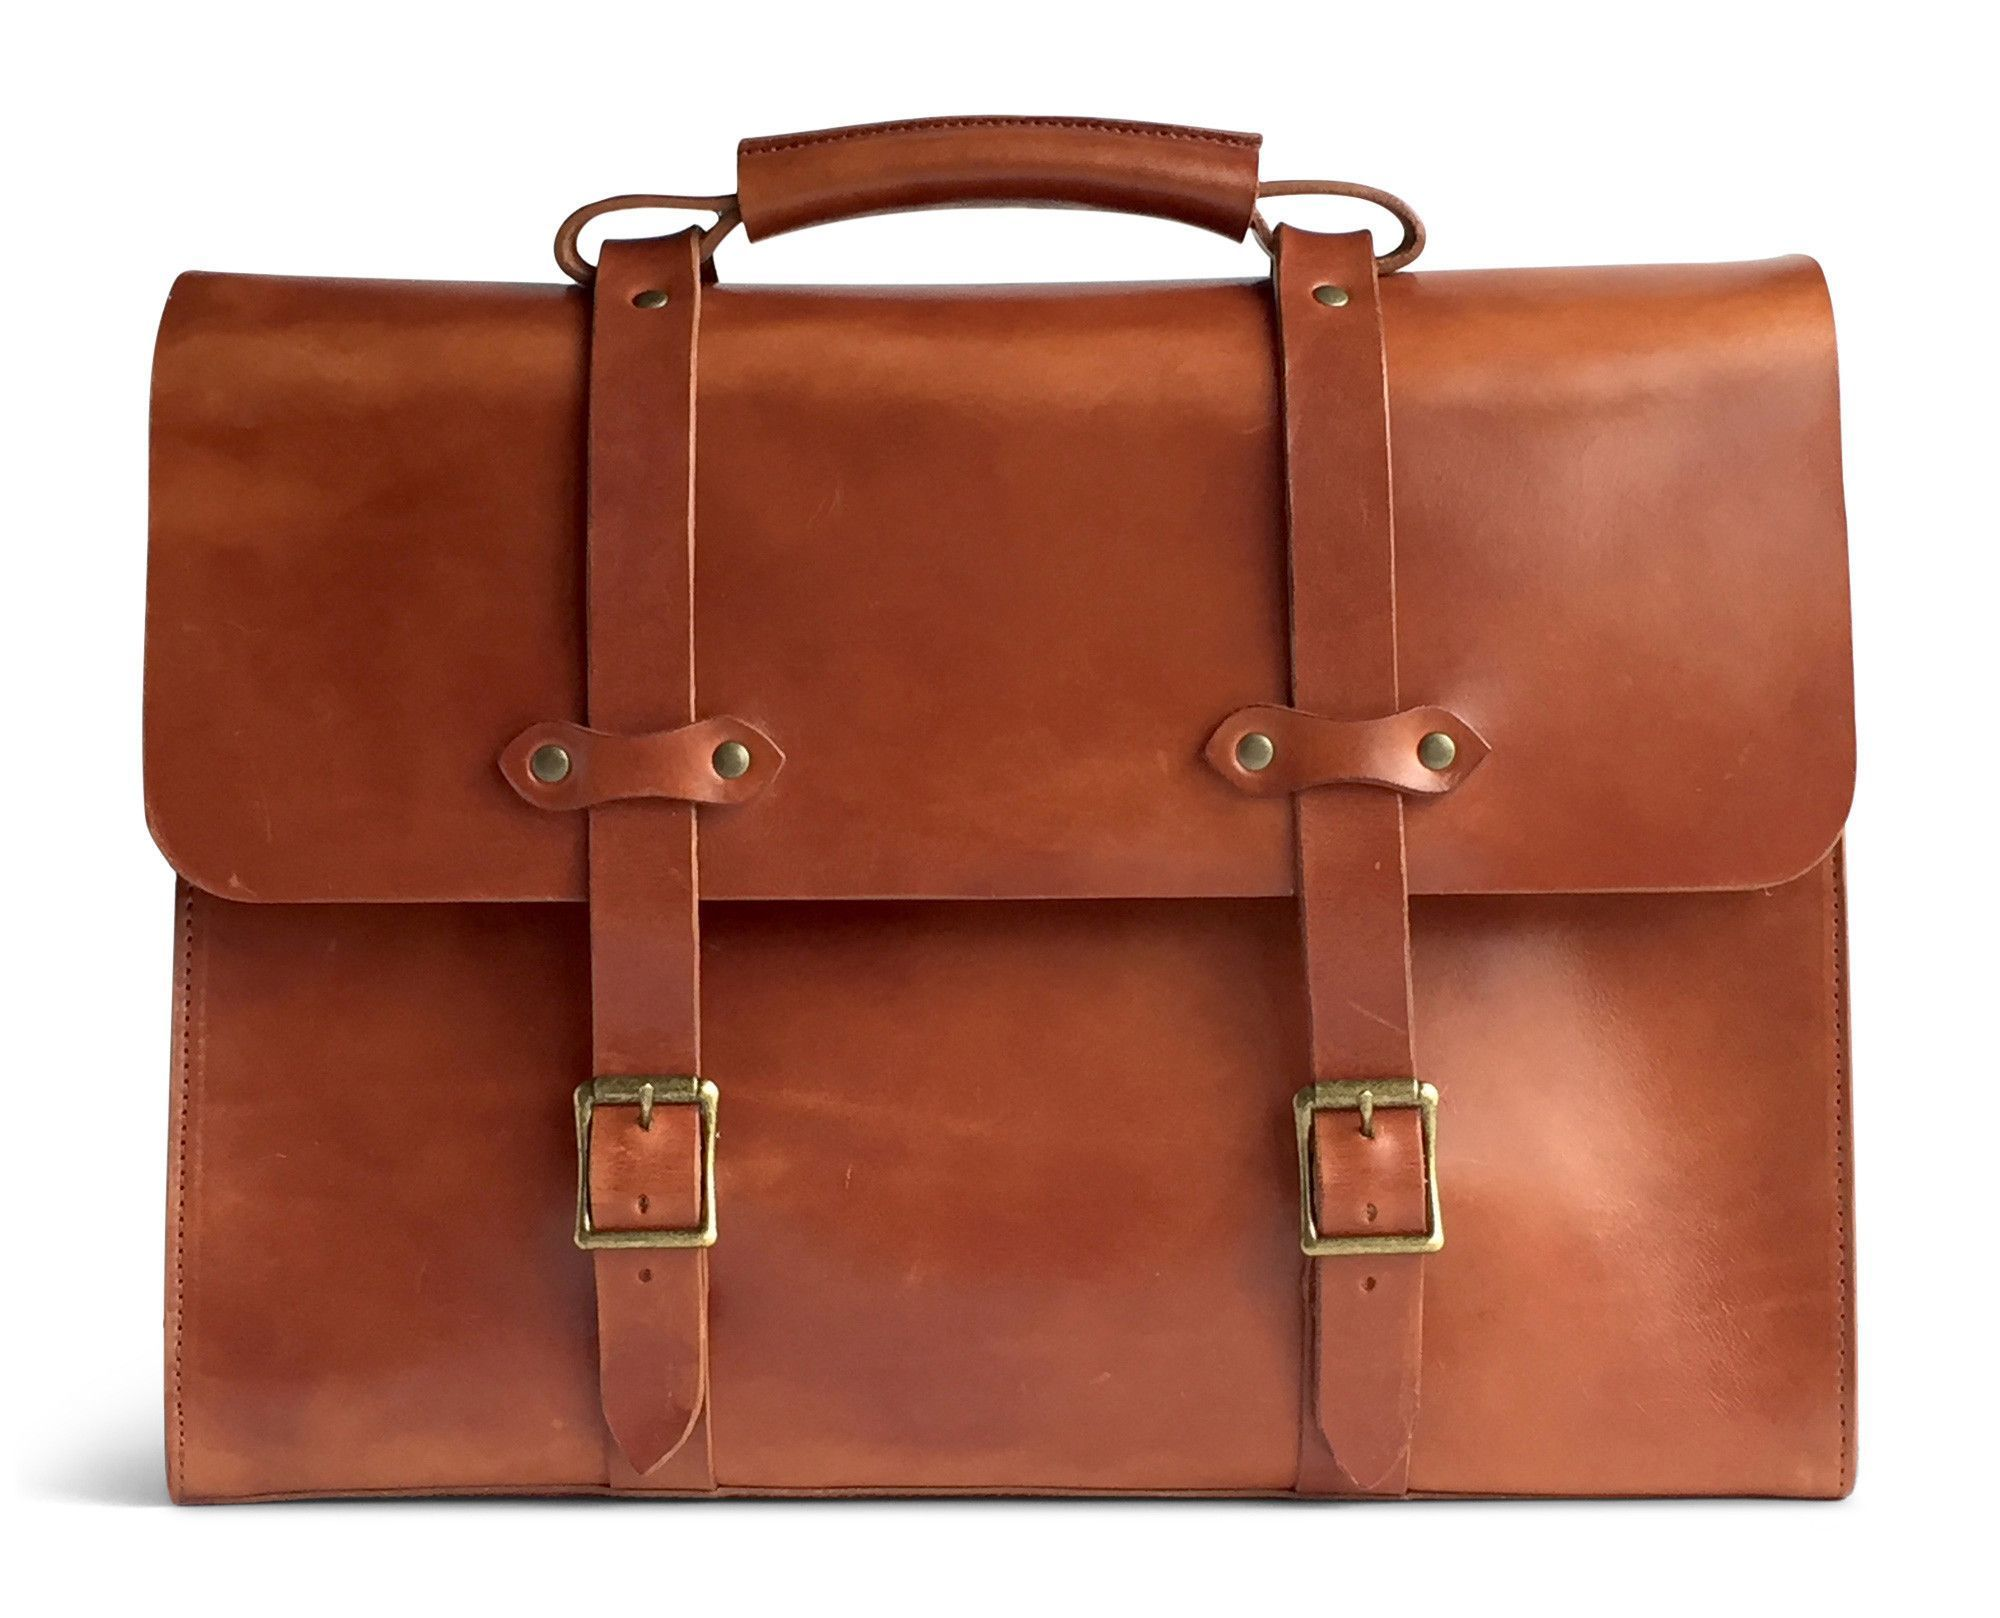 1a5c7a41e1 Vintage leather briefcase made with full grain vegetable tanned leather in  the USA (saddle tan front)  Mensaccessories